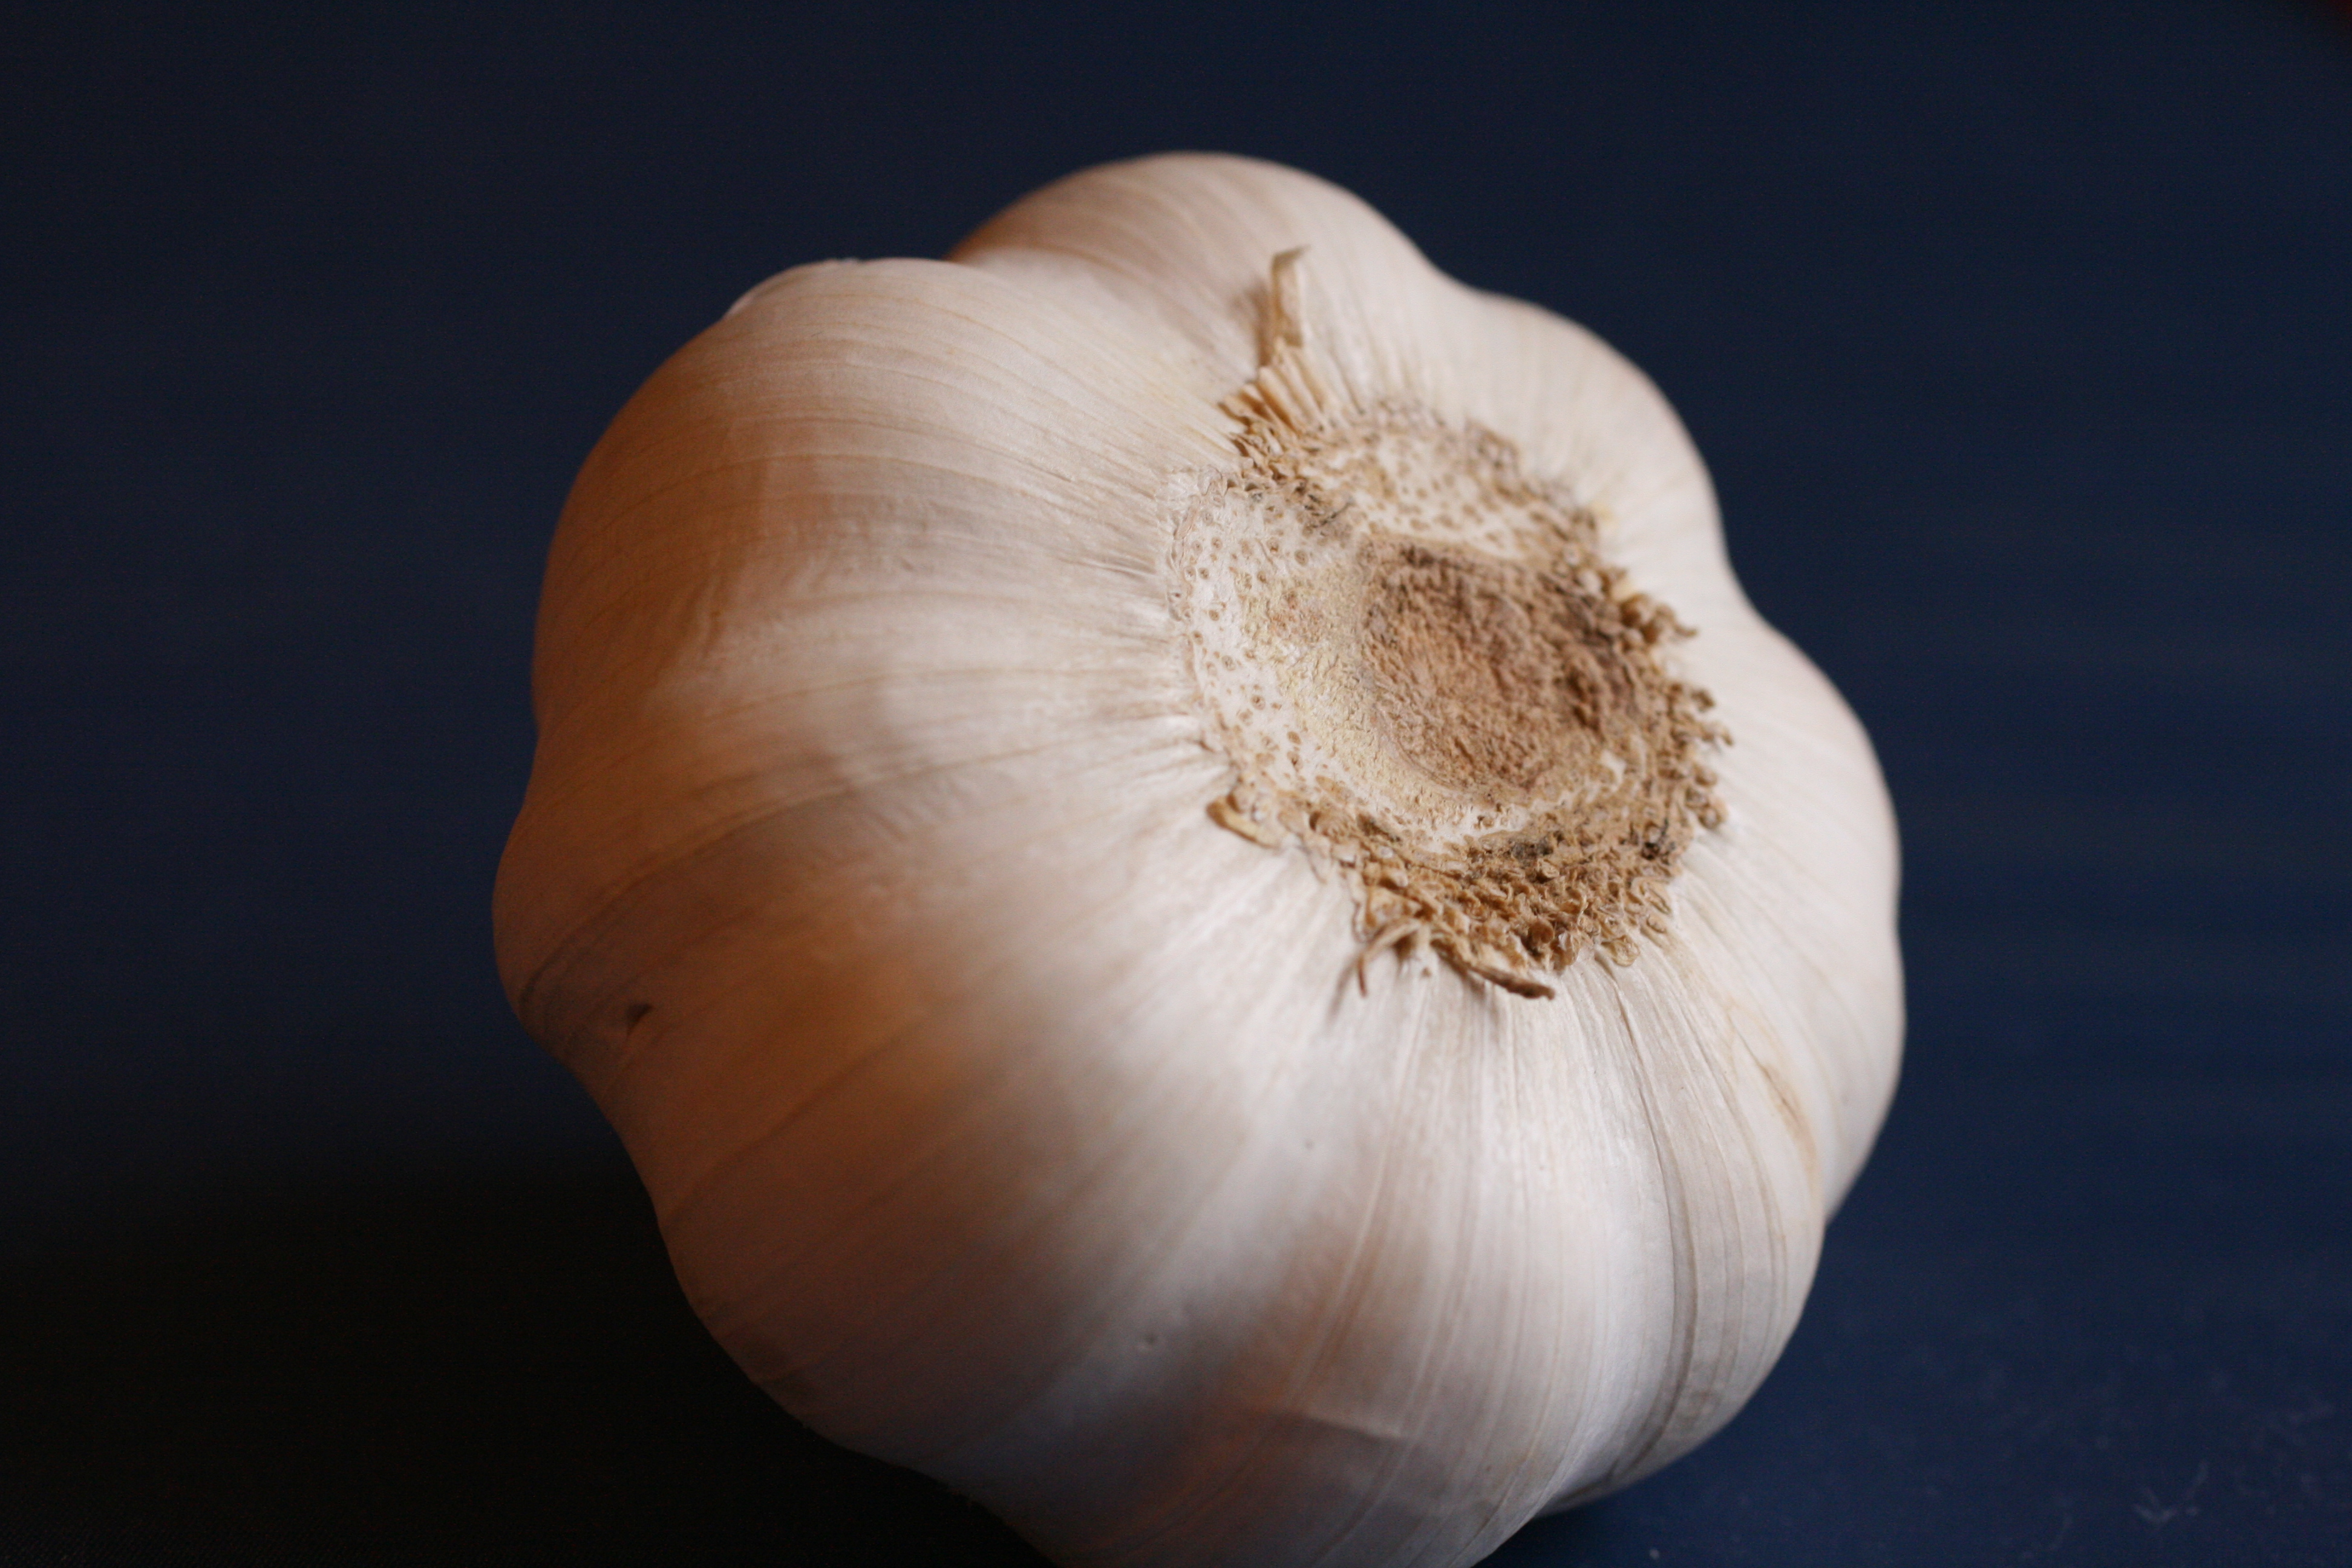 garlic reduces risk of cold